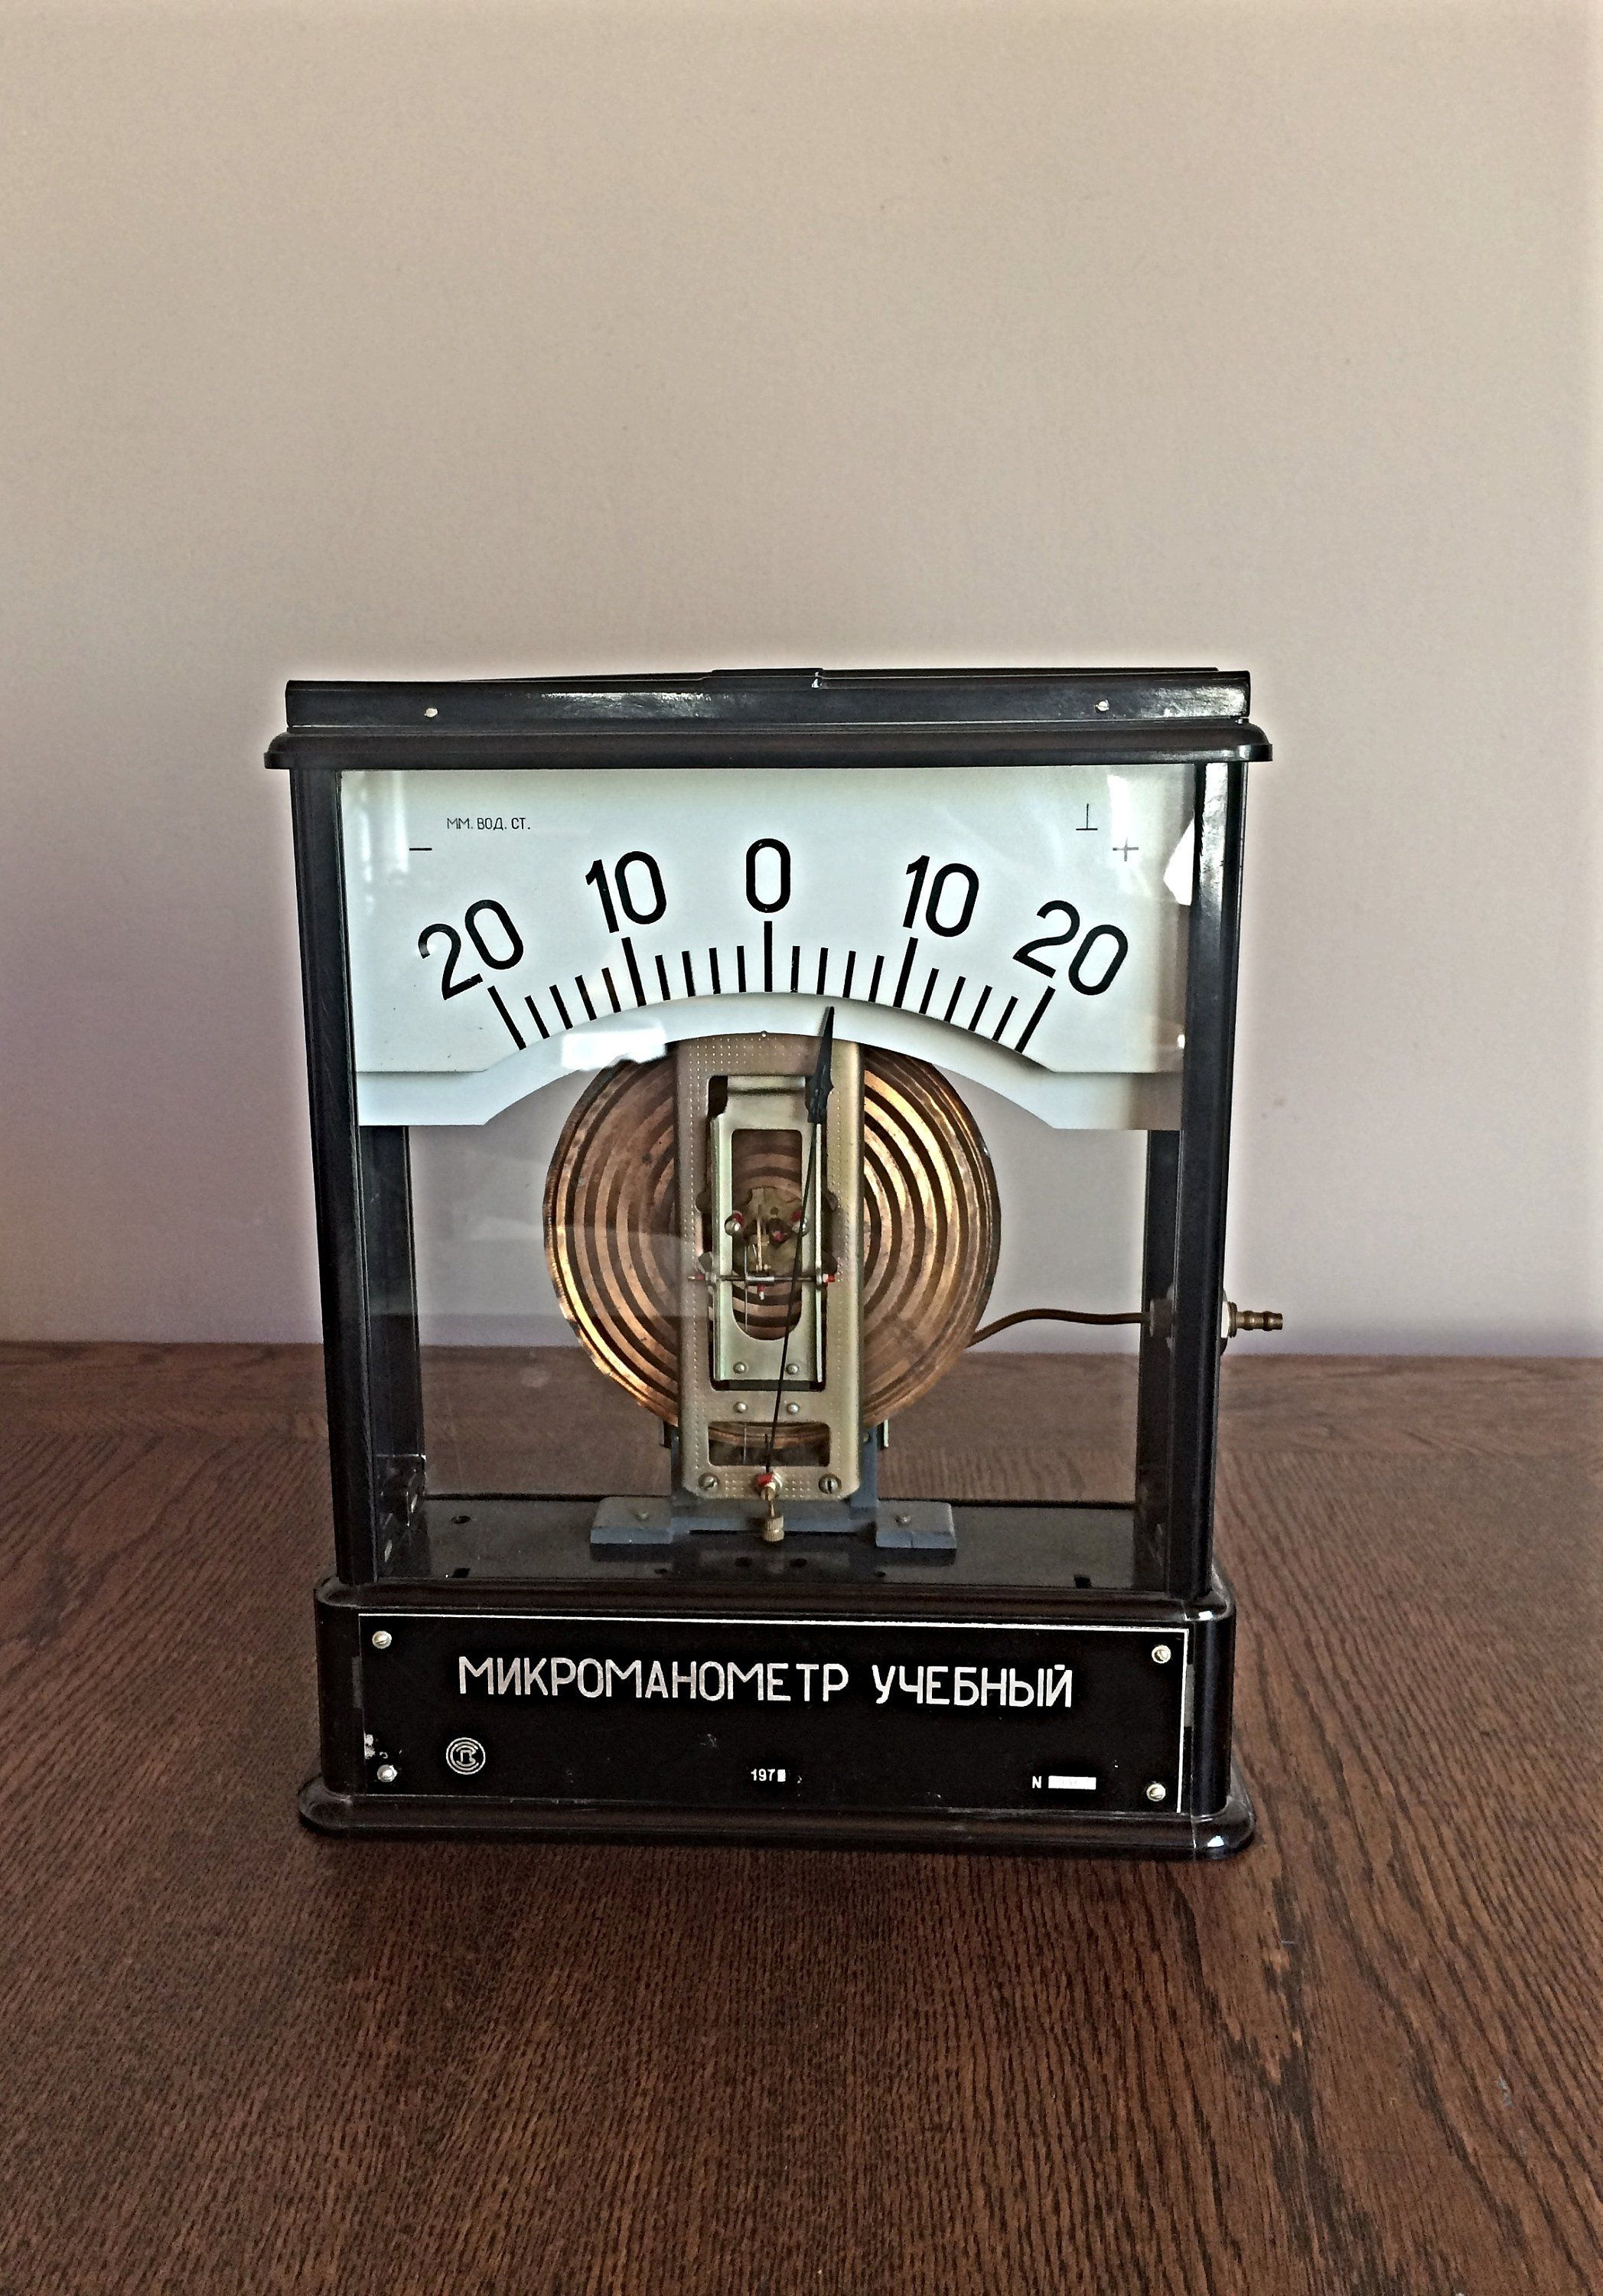 Antique Voltmeter Schematic Trusted Wiring Diagrams Soviet Vintage Device Measurement Tool School Appliance Air Conditioning